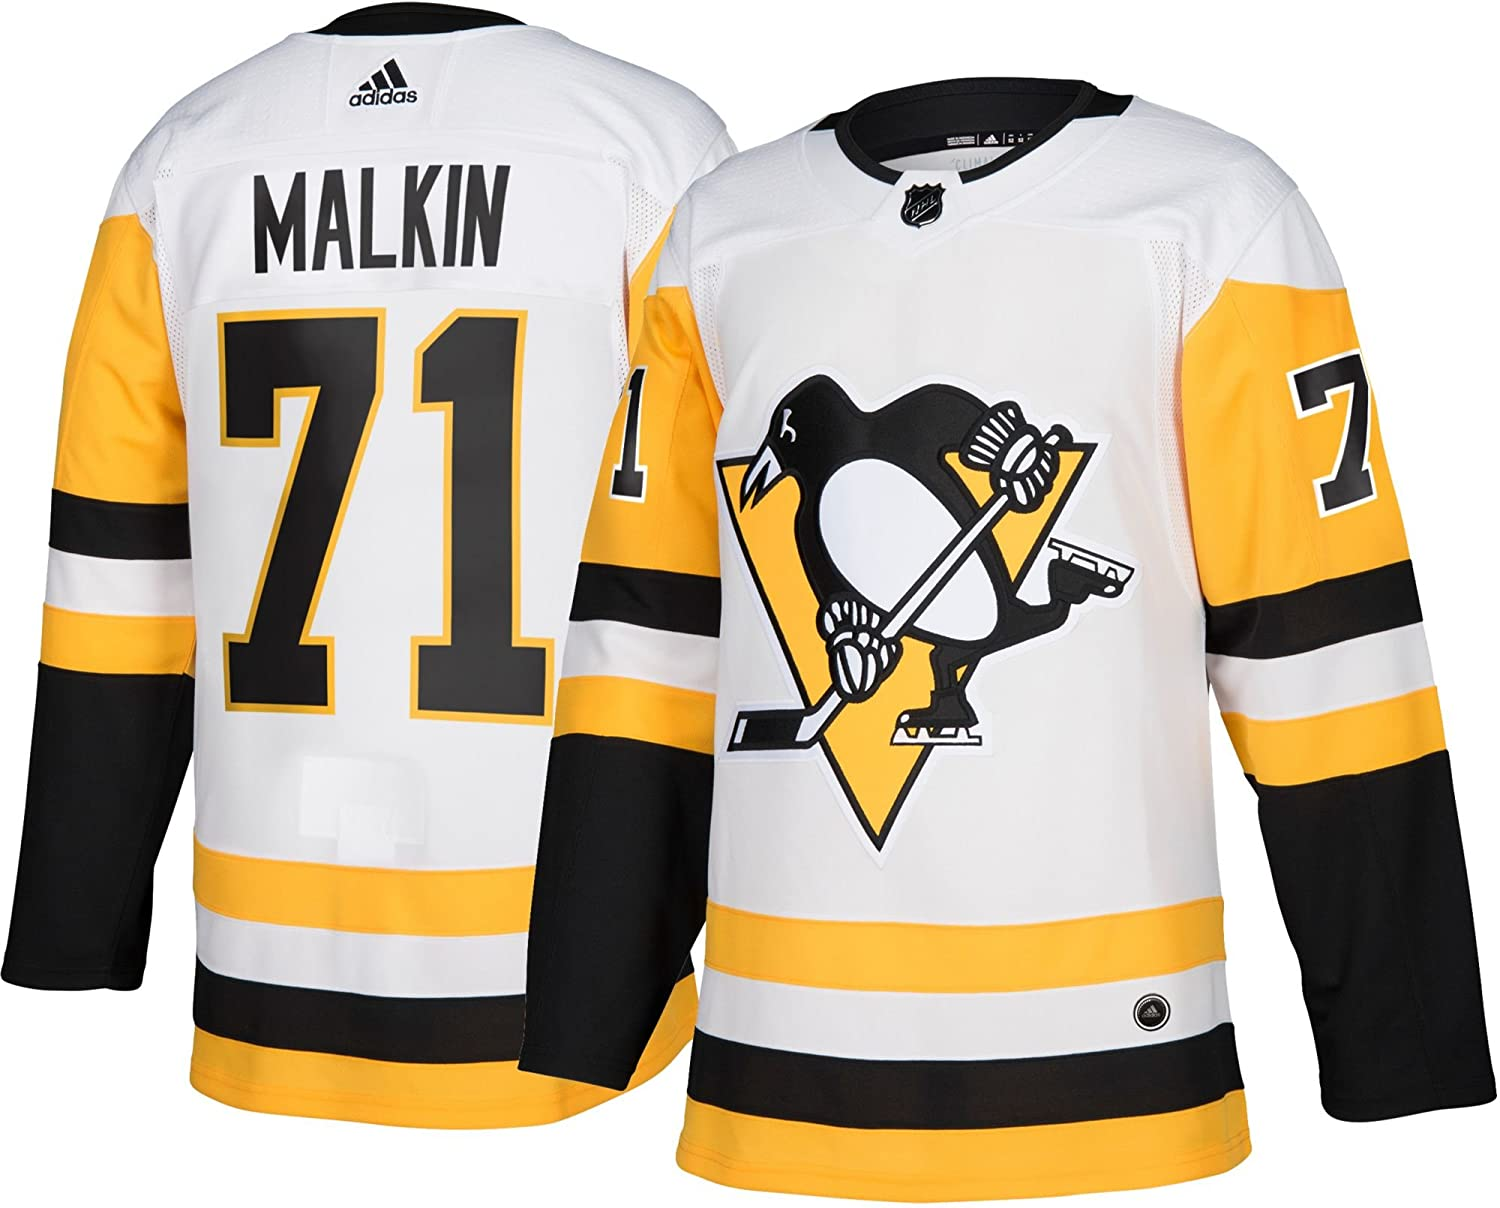 timeless design af2c1 92b8a Amazon.com : adidas Evgeni Malkin Pittsburgh Penguins ...